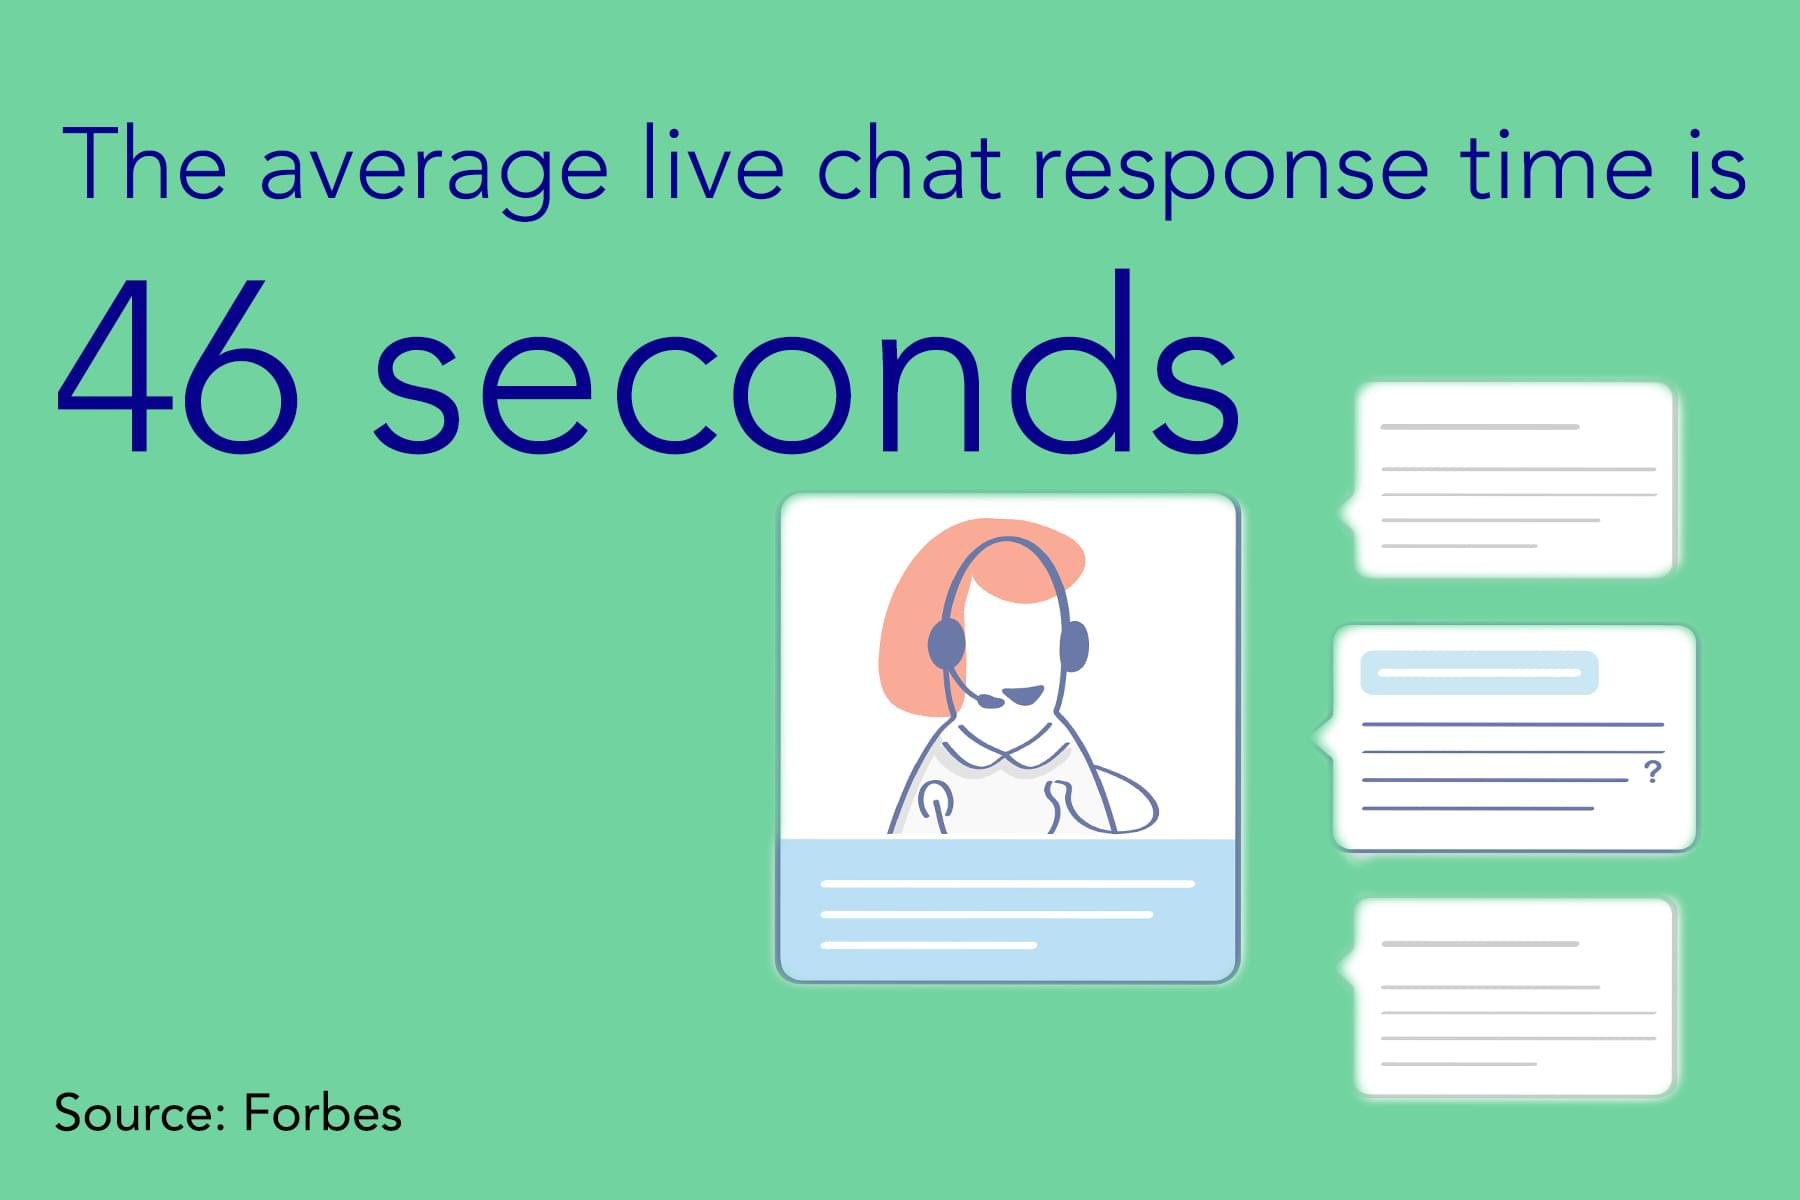 Live chat response time